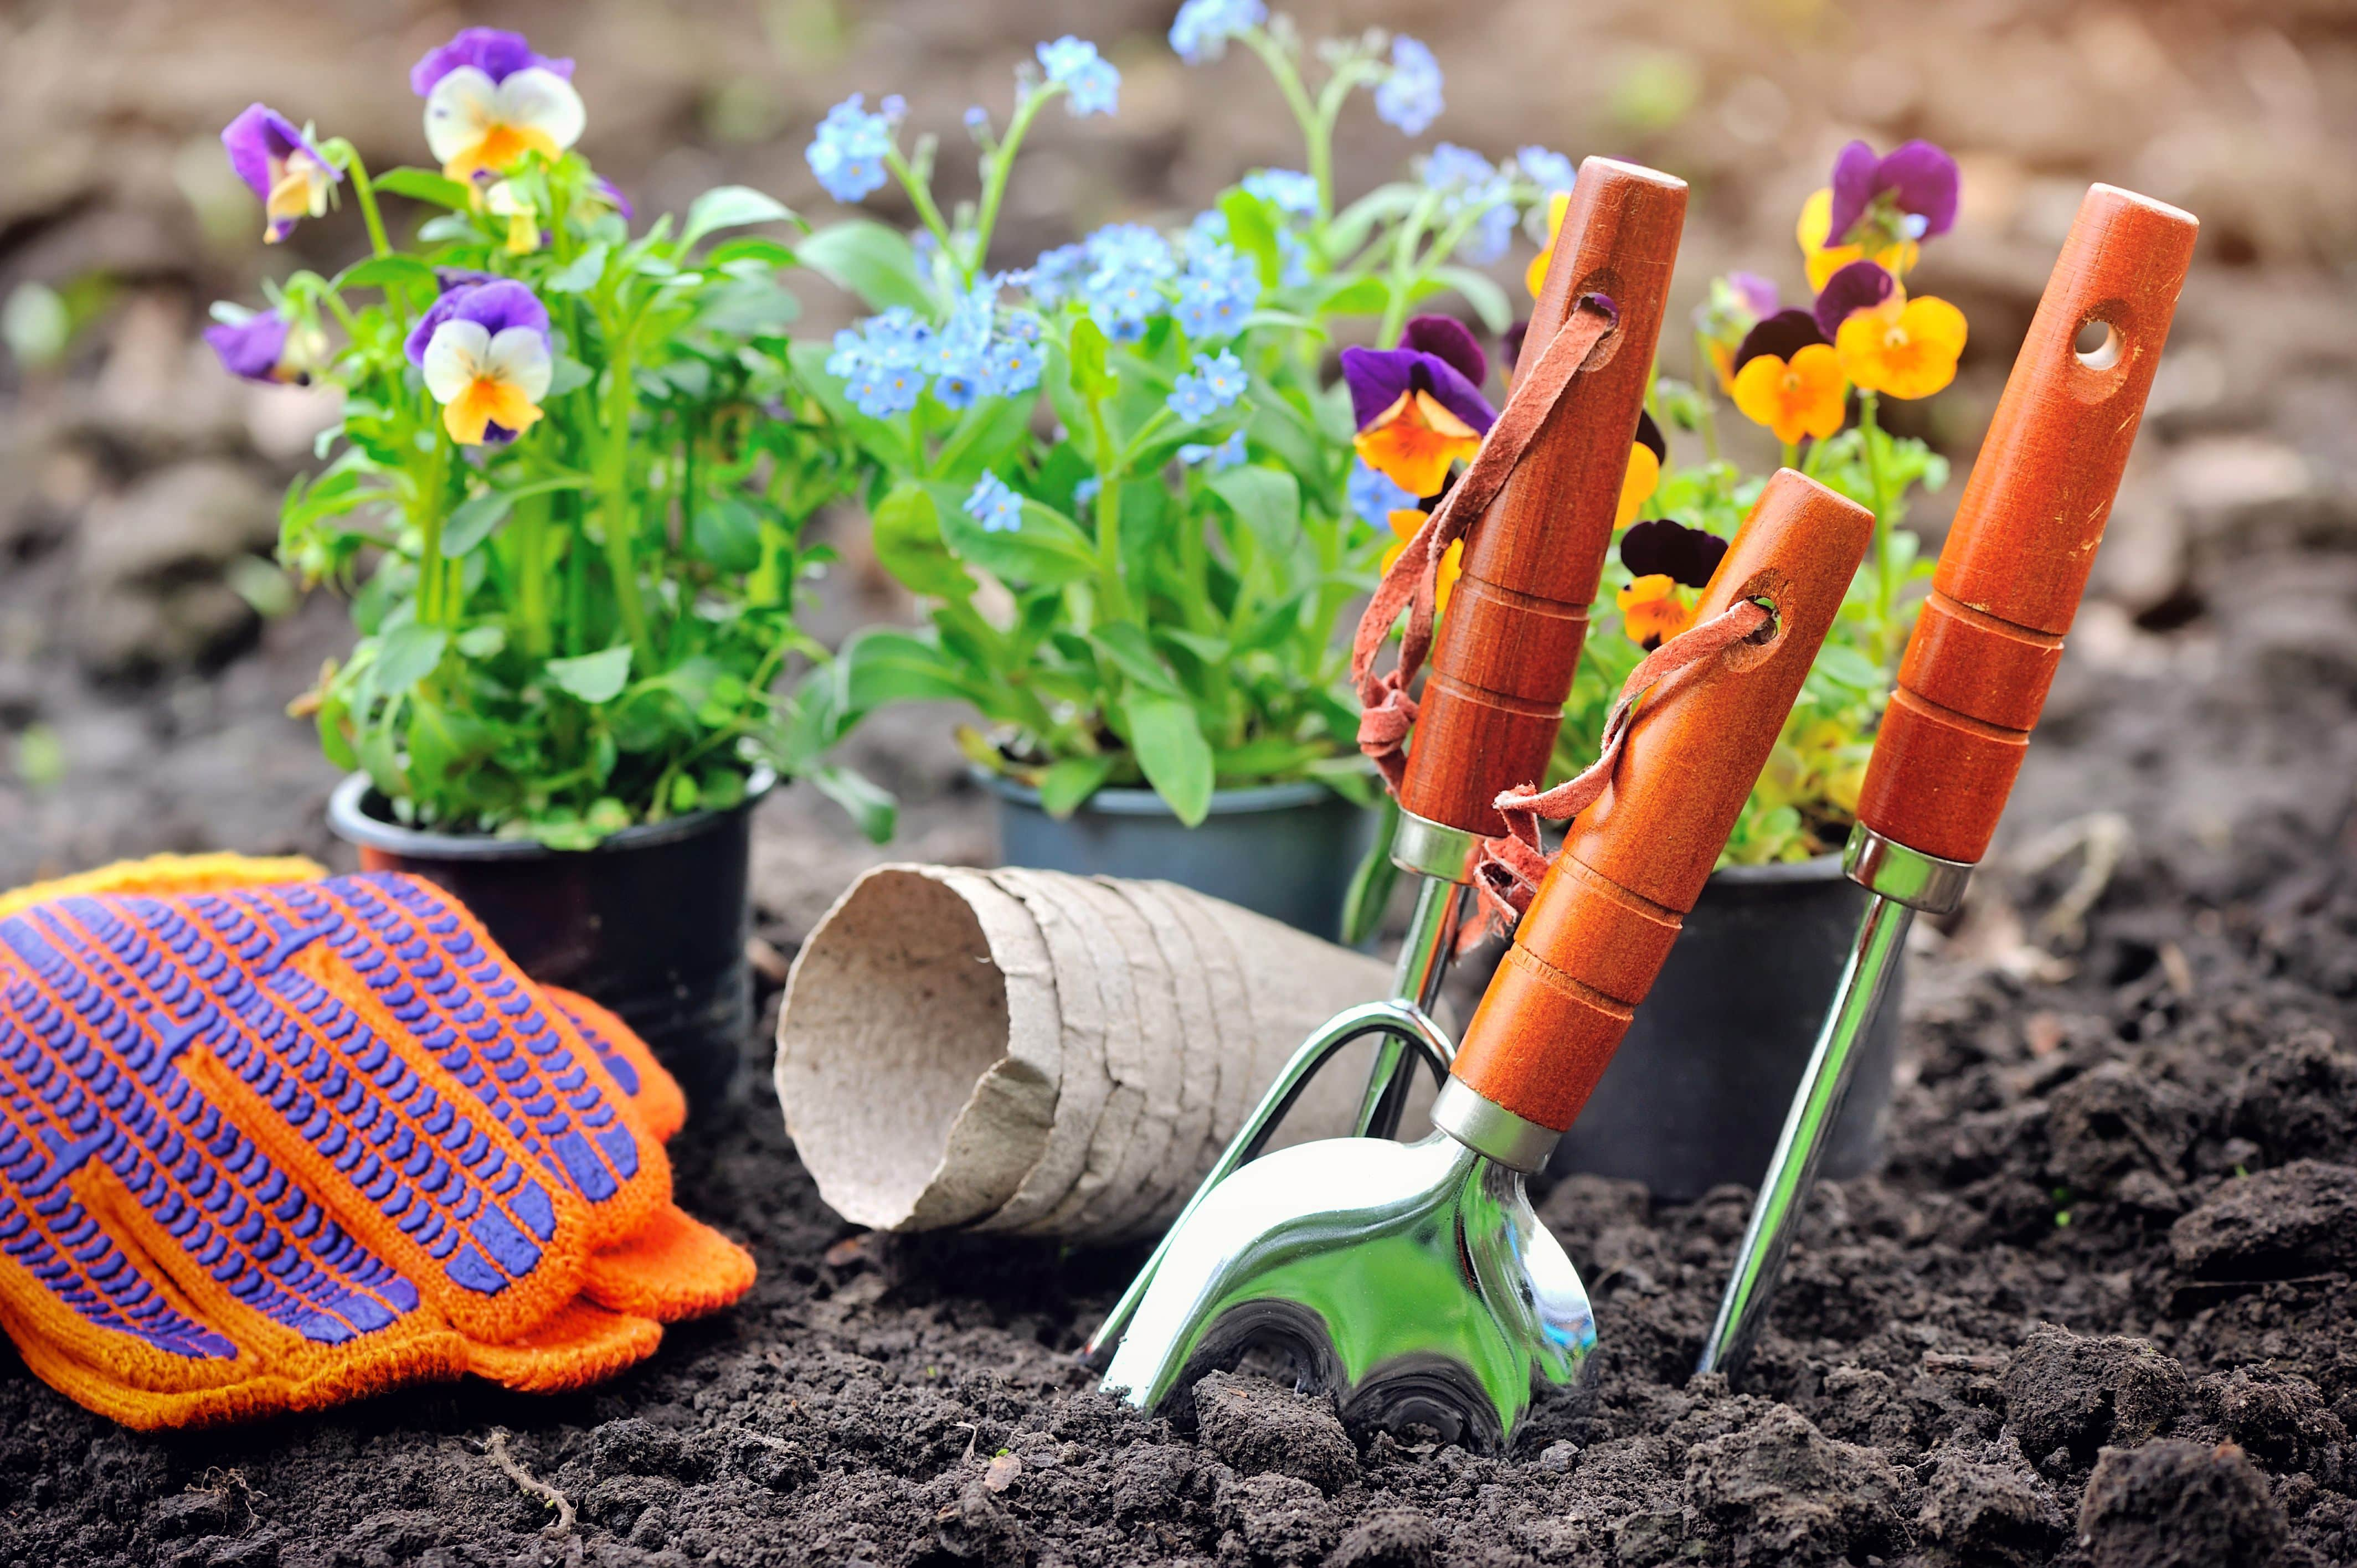 gardening-tools-and-spring-flowers